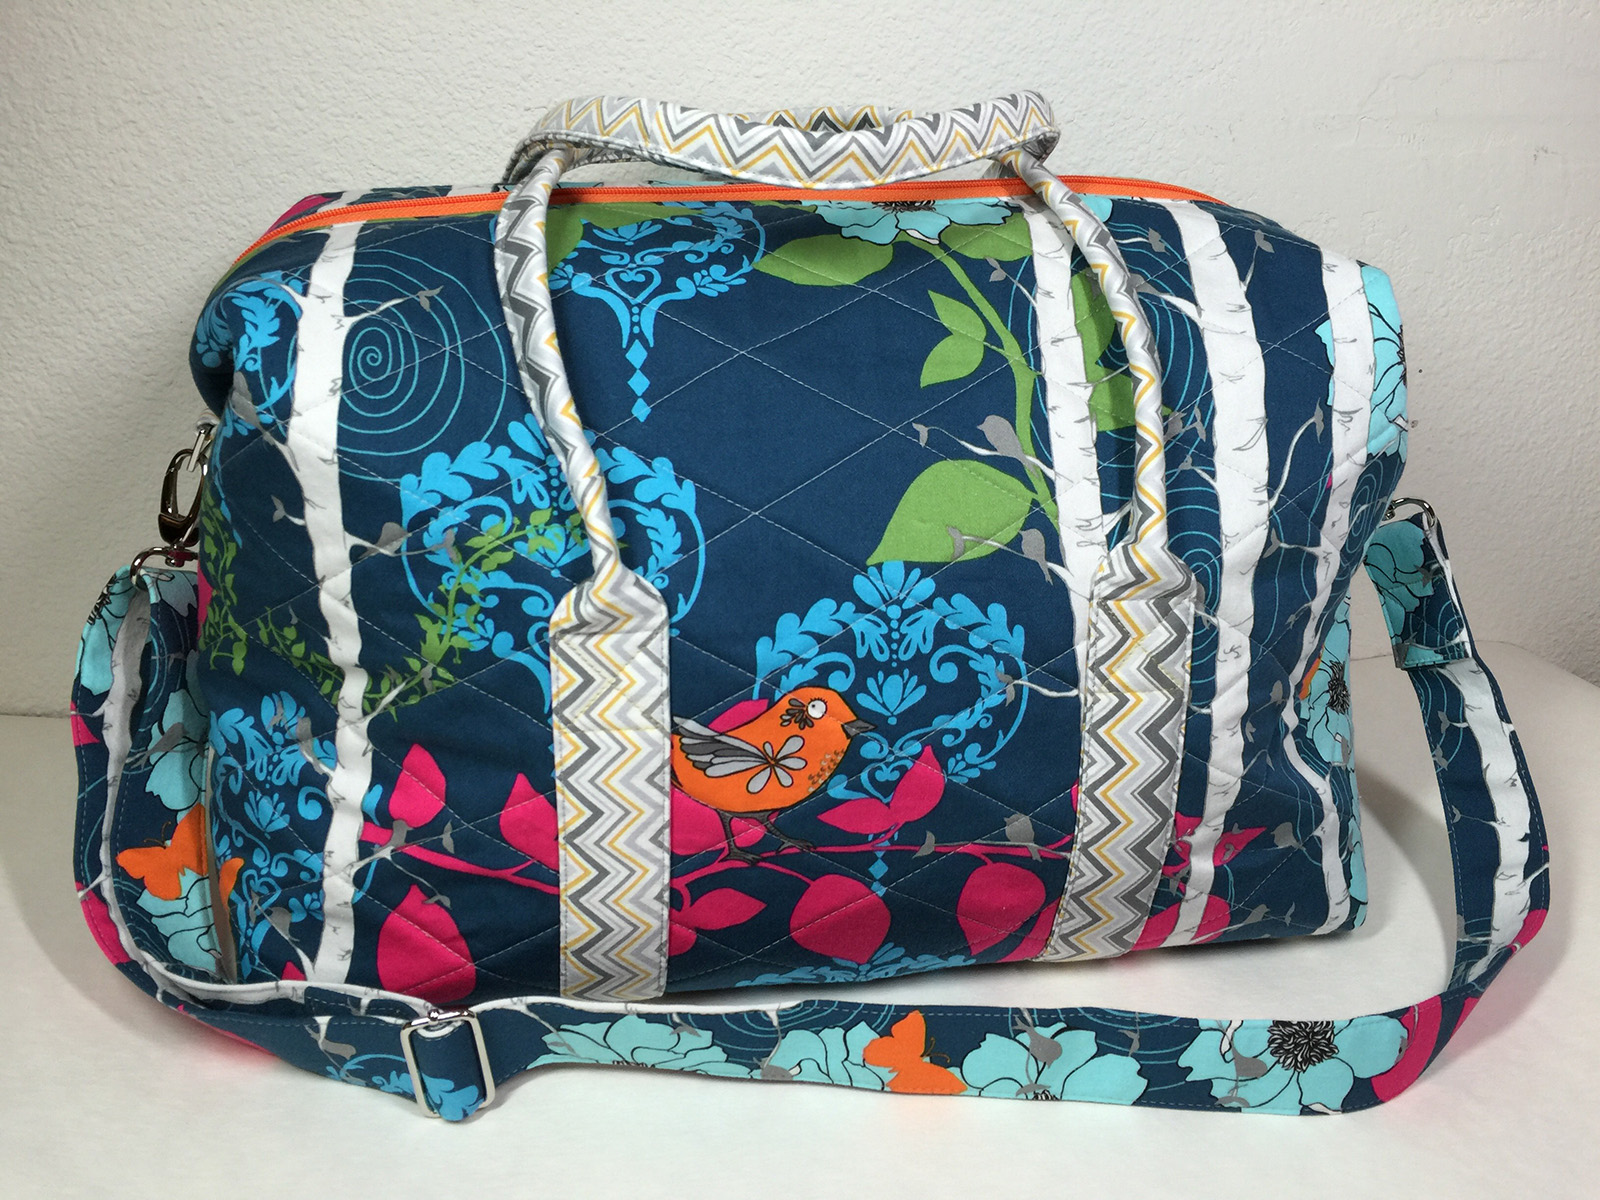 Sew Sweetness Emblem Duffle Bag, sewn by Stephanie of Thread Ov Metal